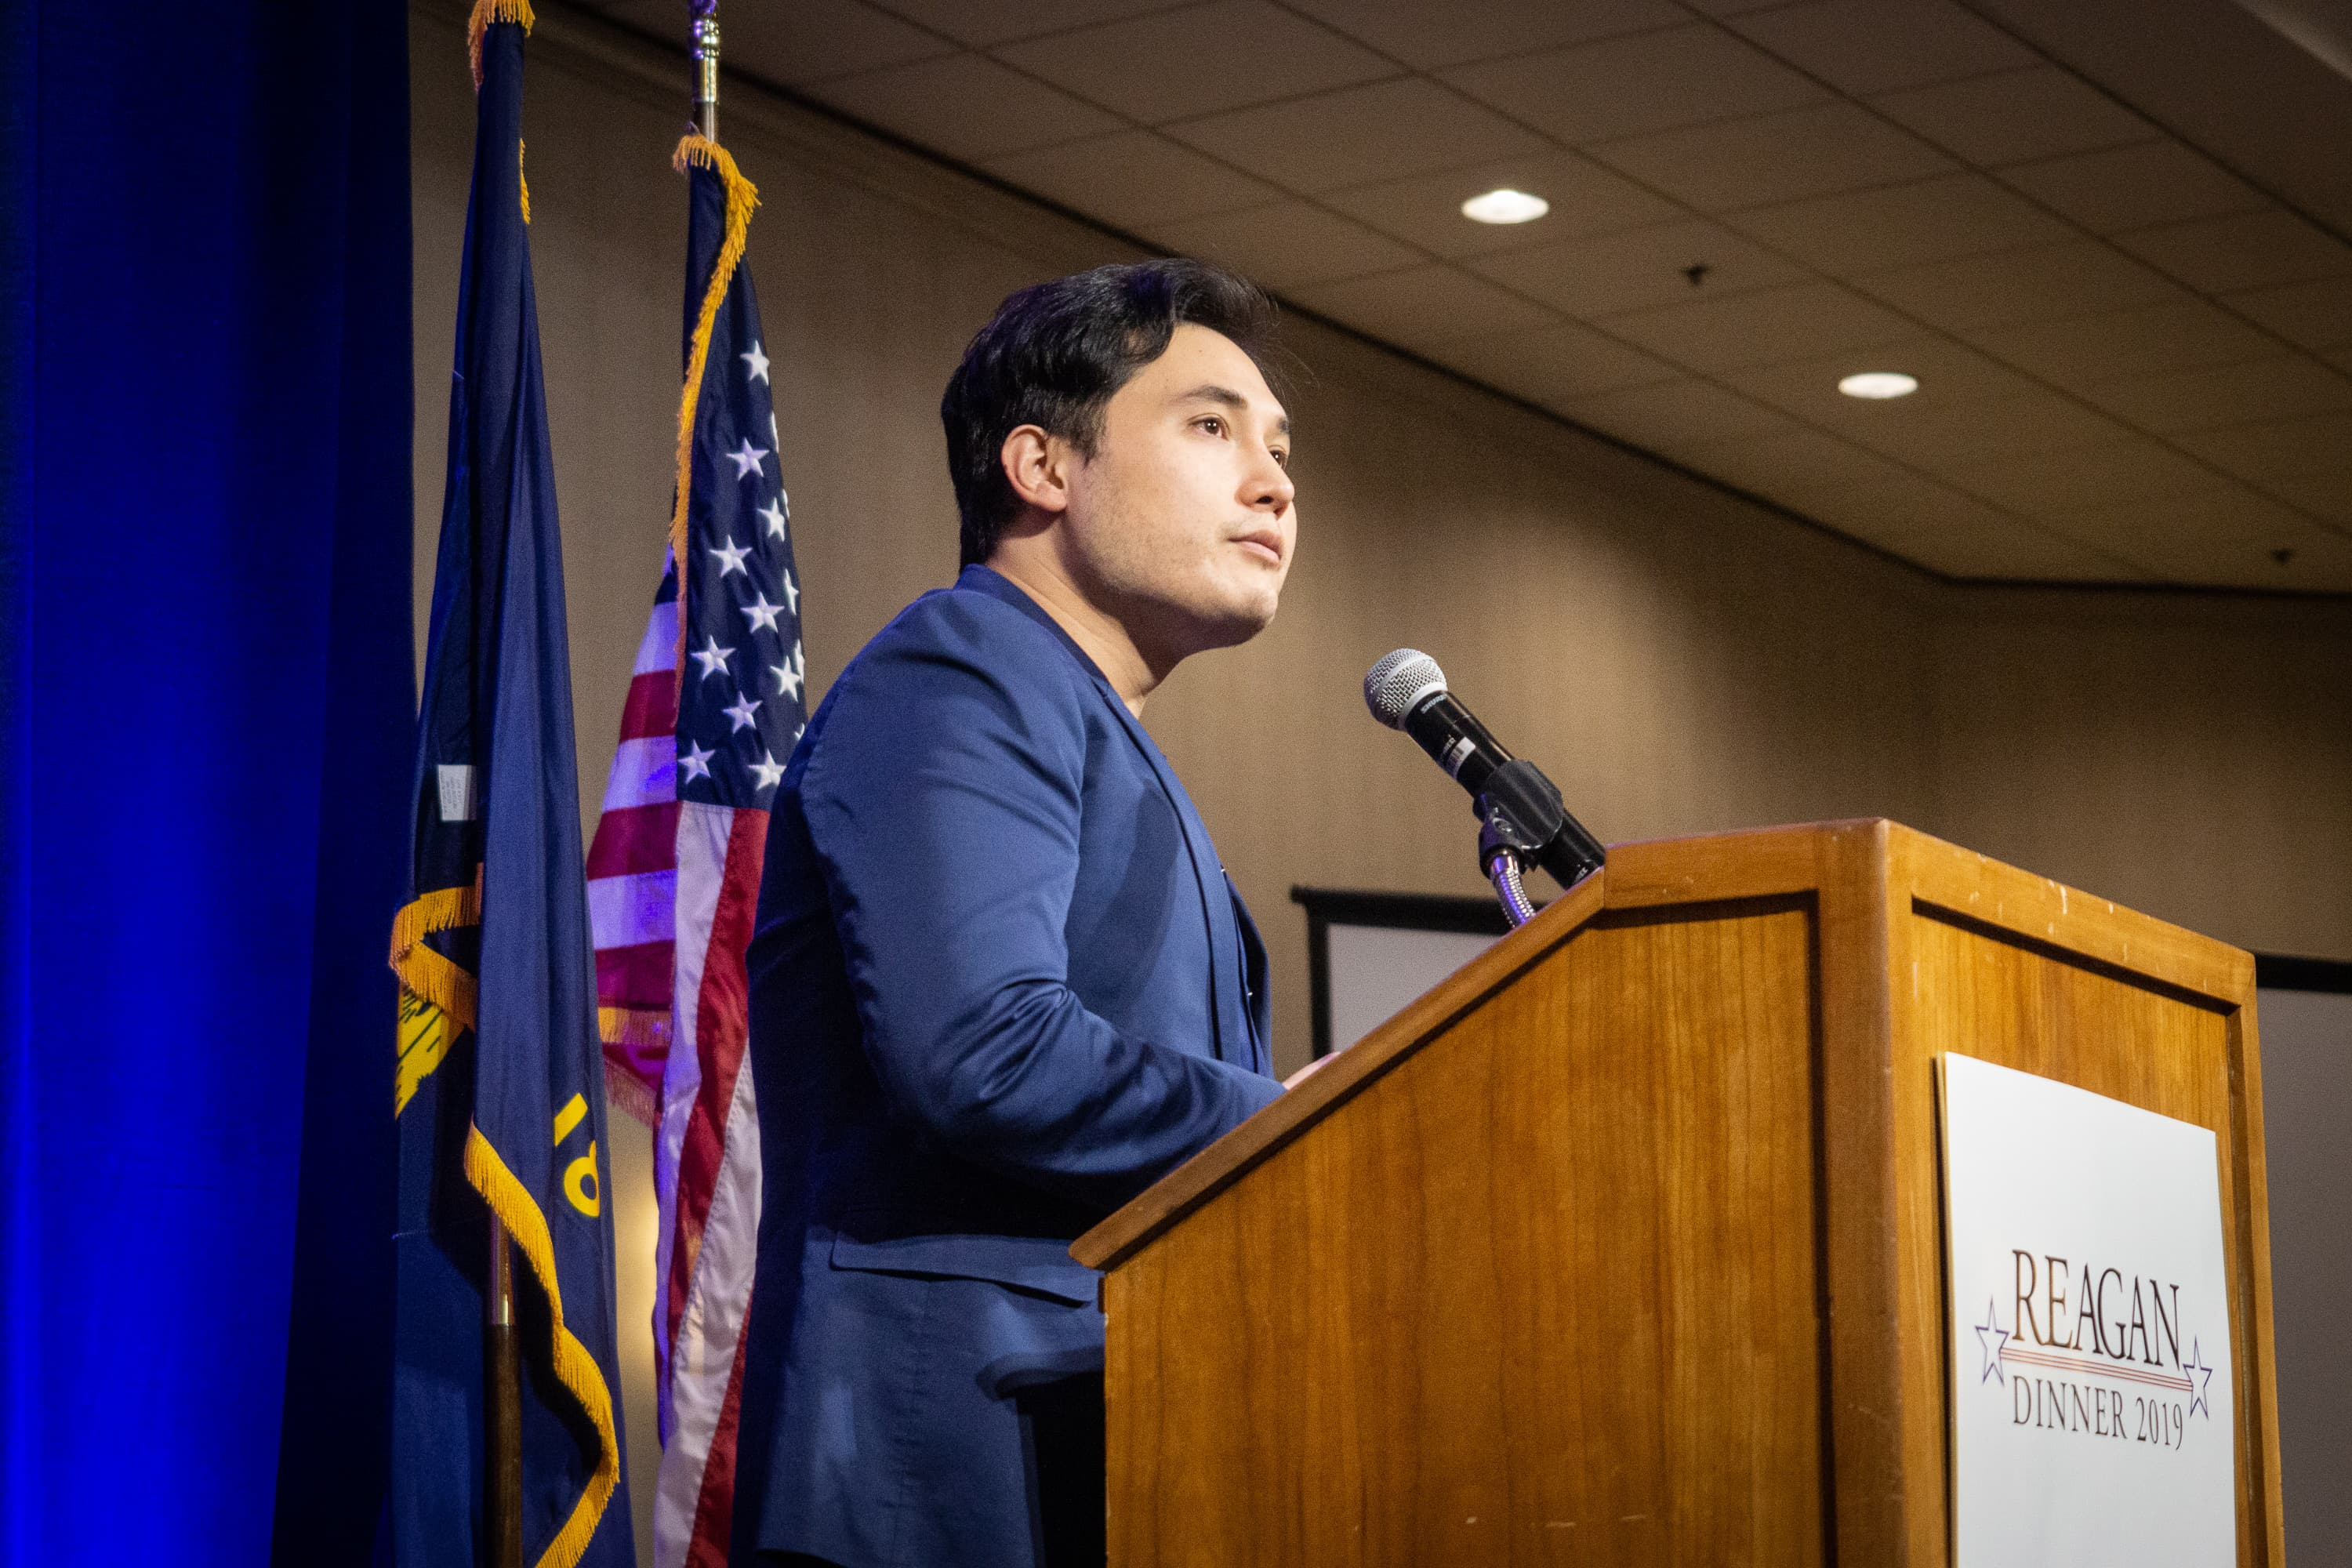 Legal proceedings against the University of British Columbia will commence after they refused to reinstate Andy Ngo's lecture on antifa violence.